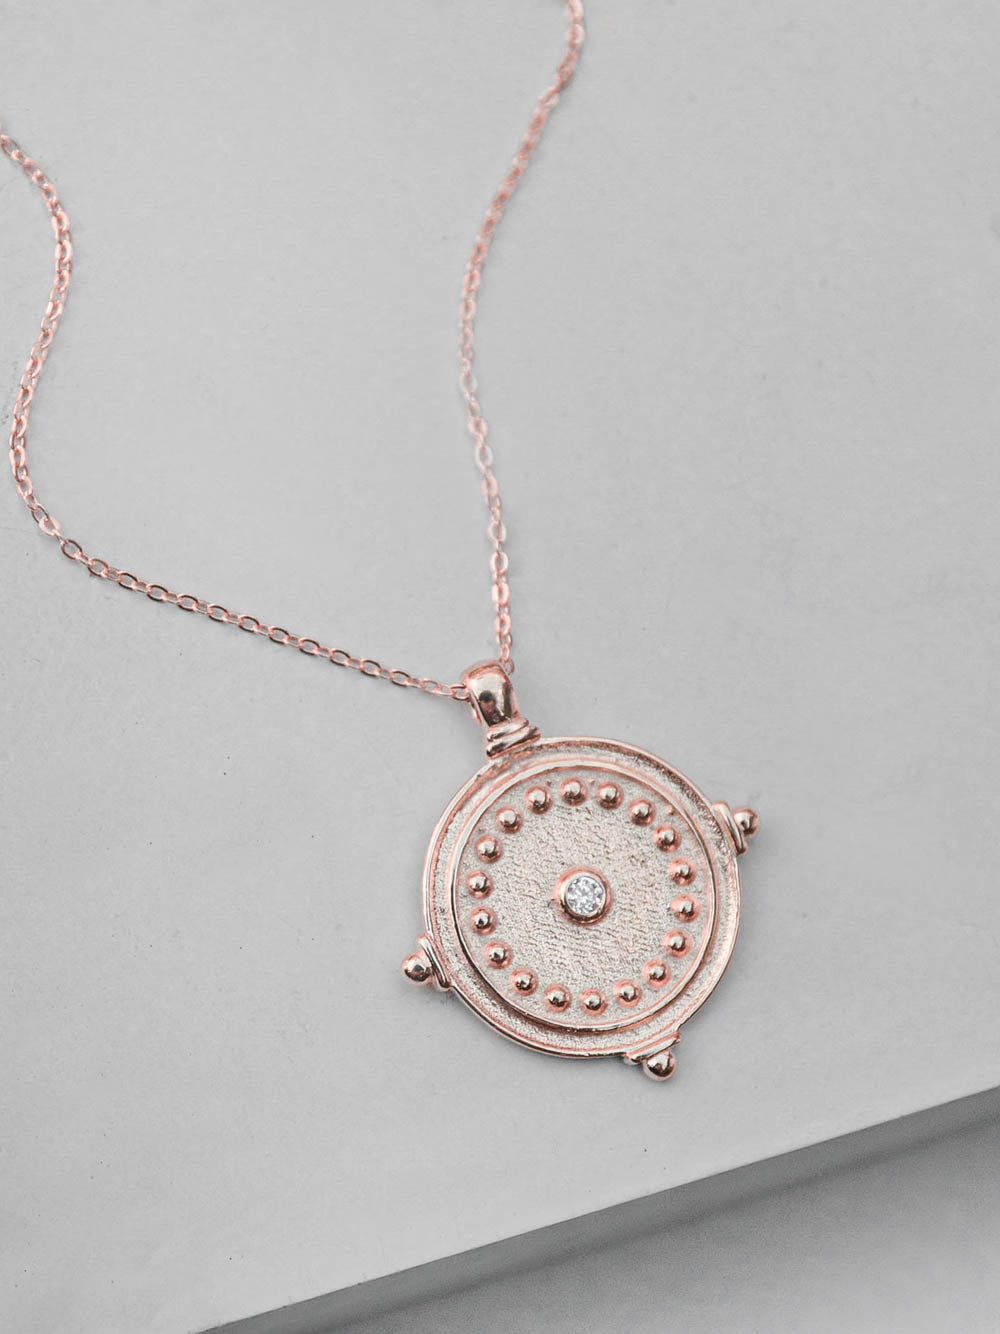 Rose Gold Antique Coin Necklace  by The Faint Hearted Jewelry